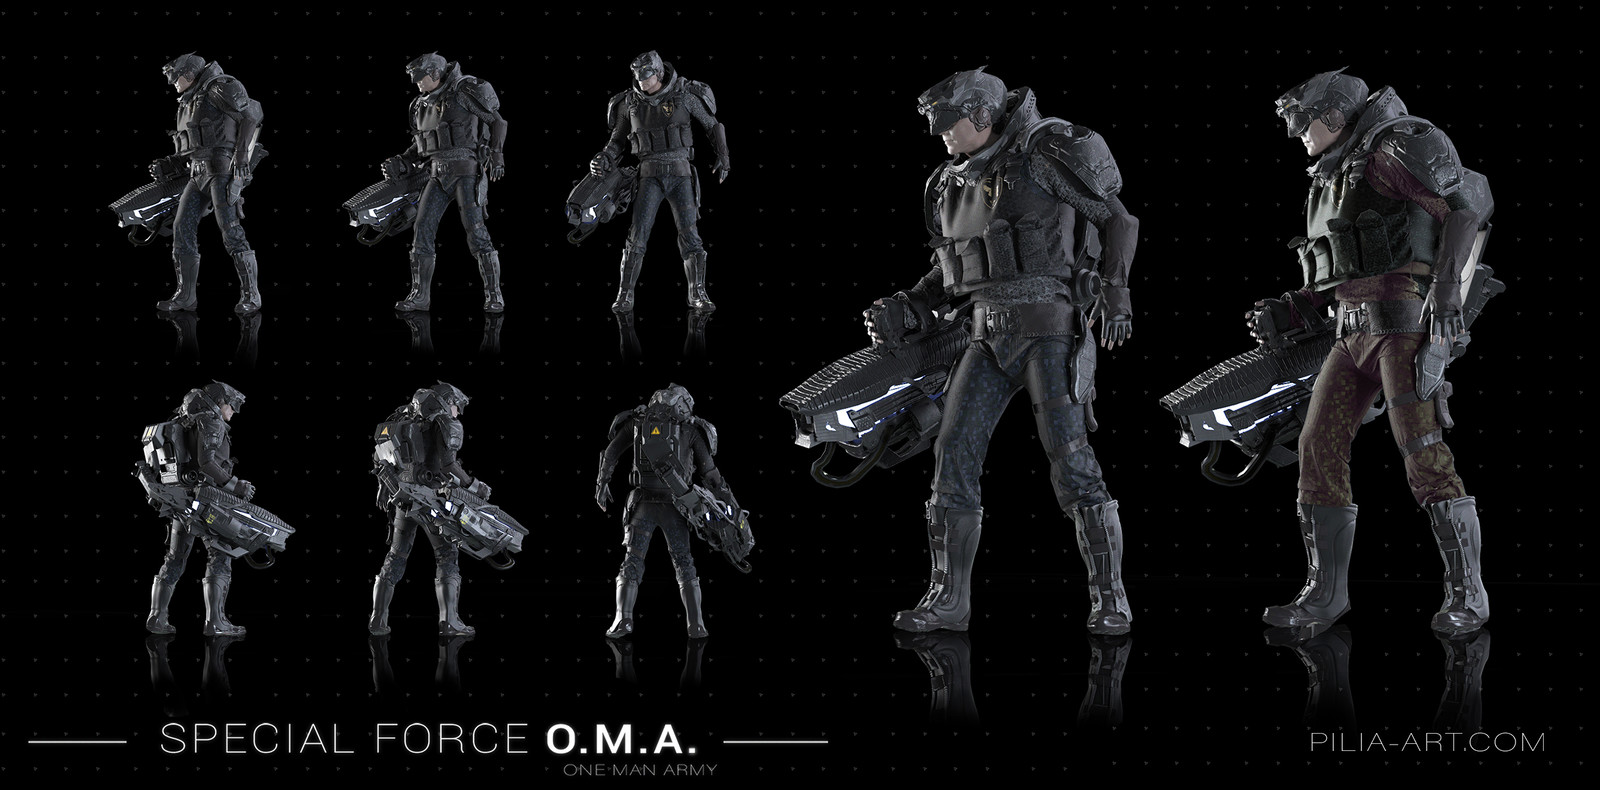 Special Force O.M.A.